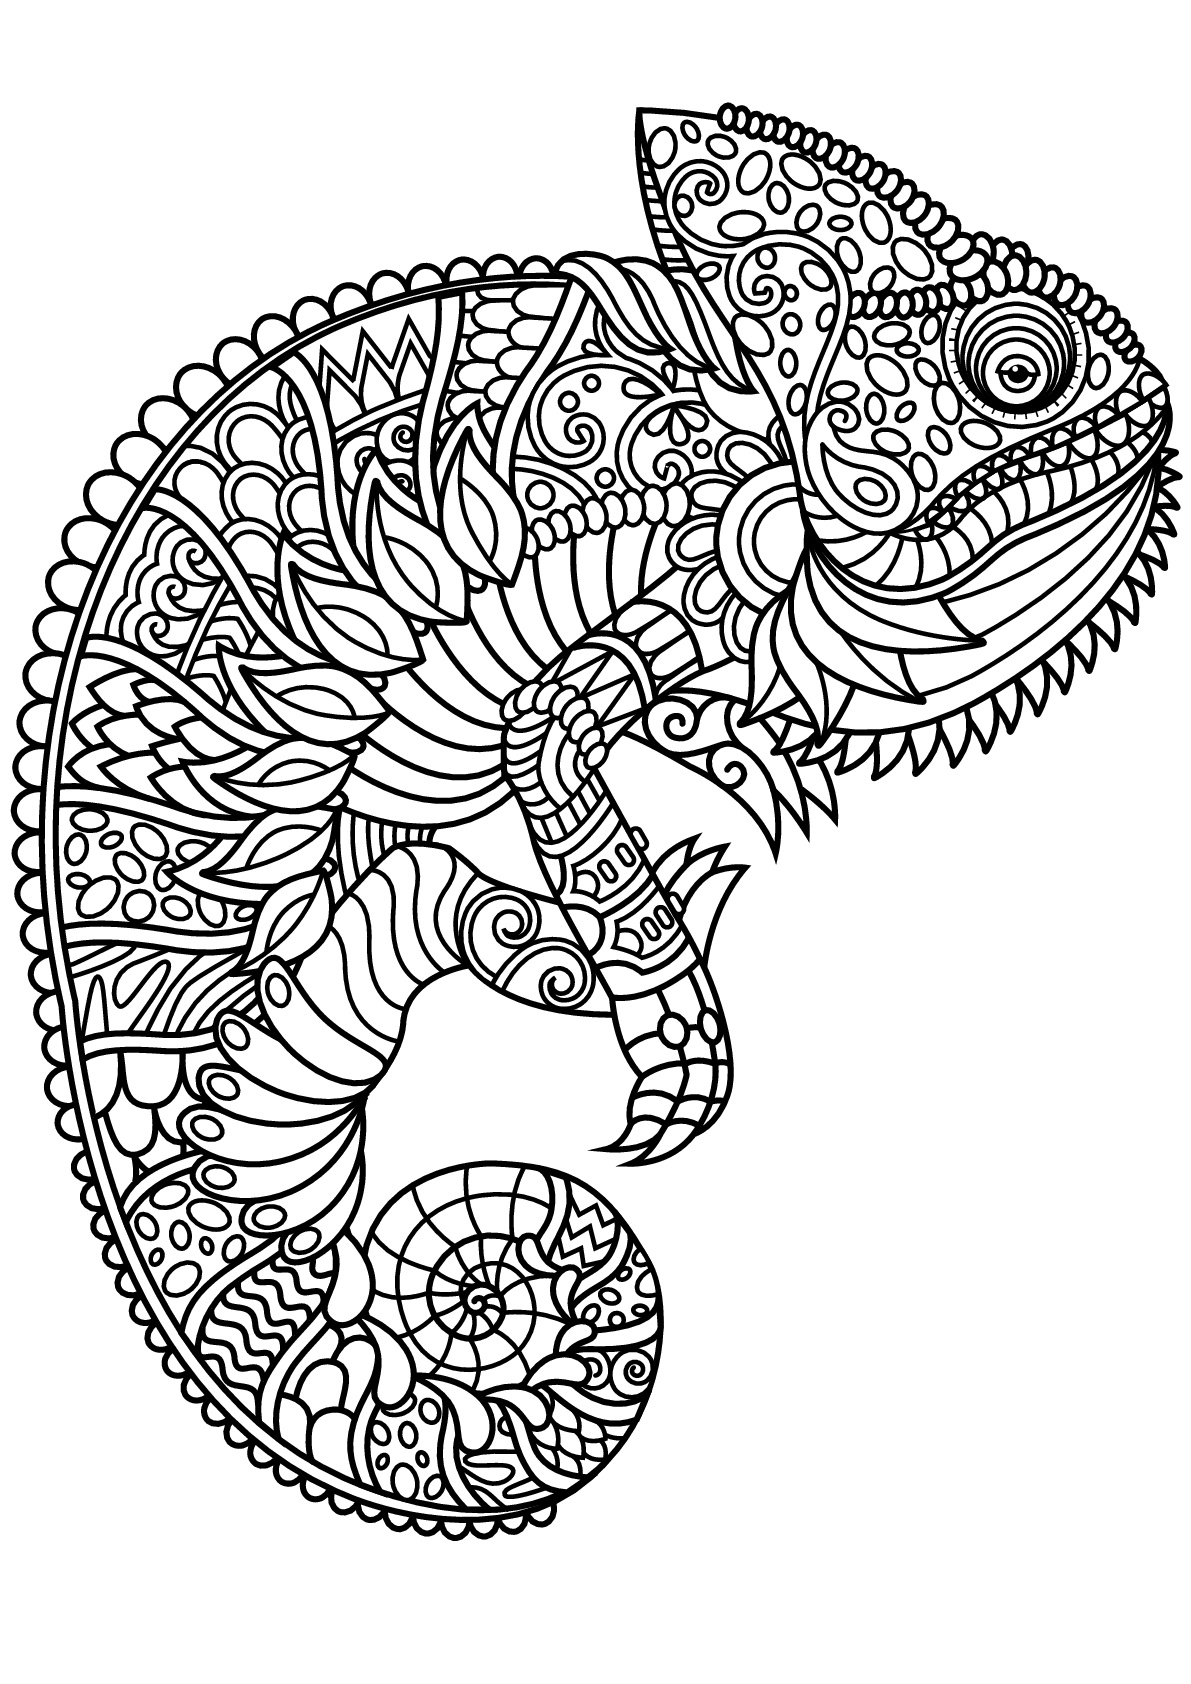 coloring pages for adults chameleon color coloring page adults kids chameleon stock vector coloring chameleon pages for adults